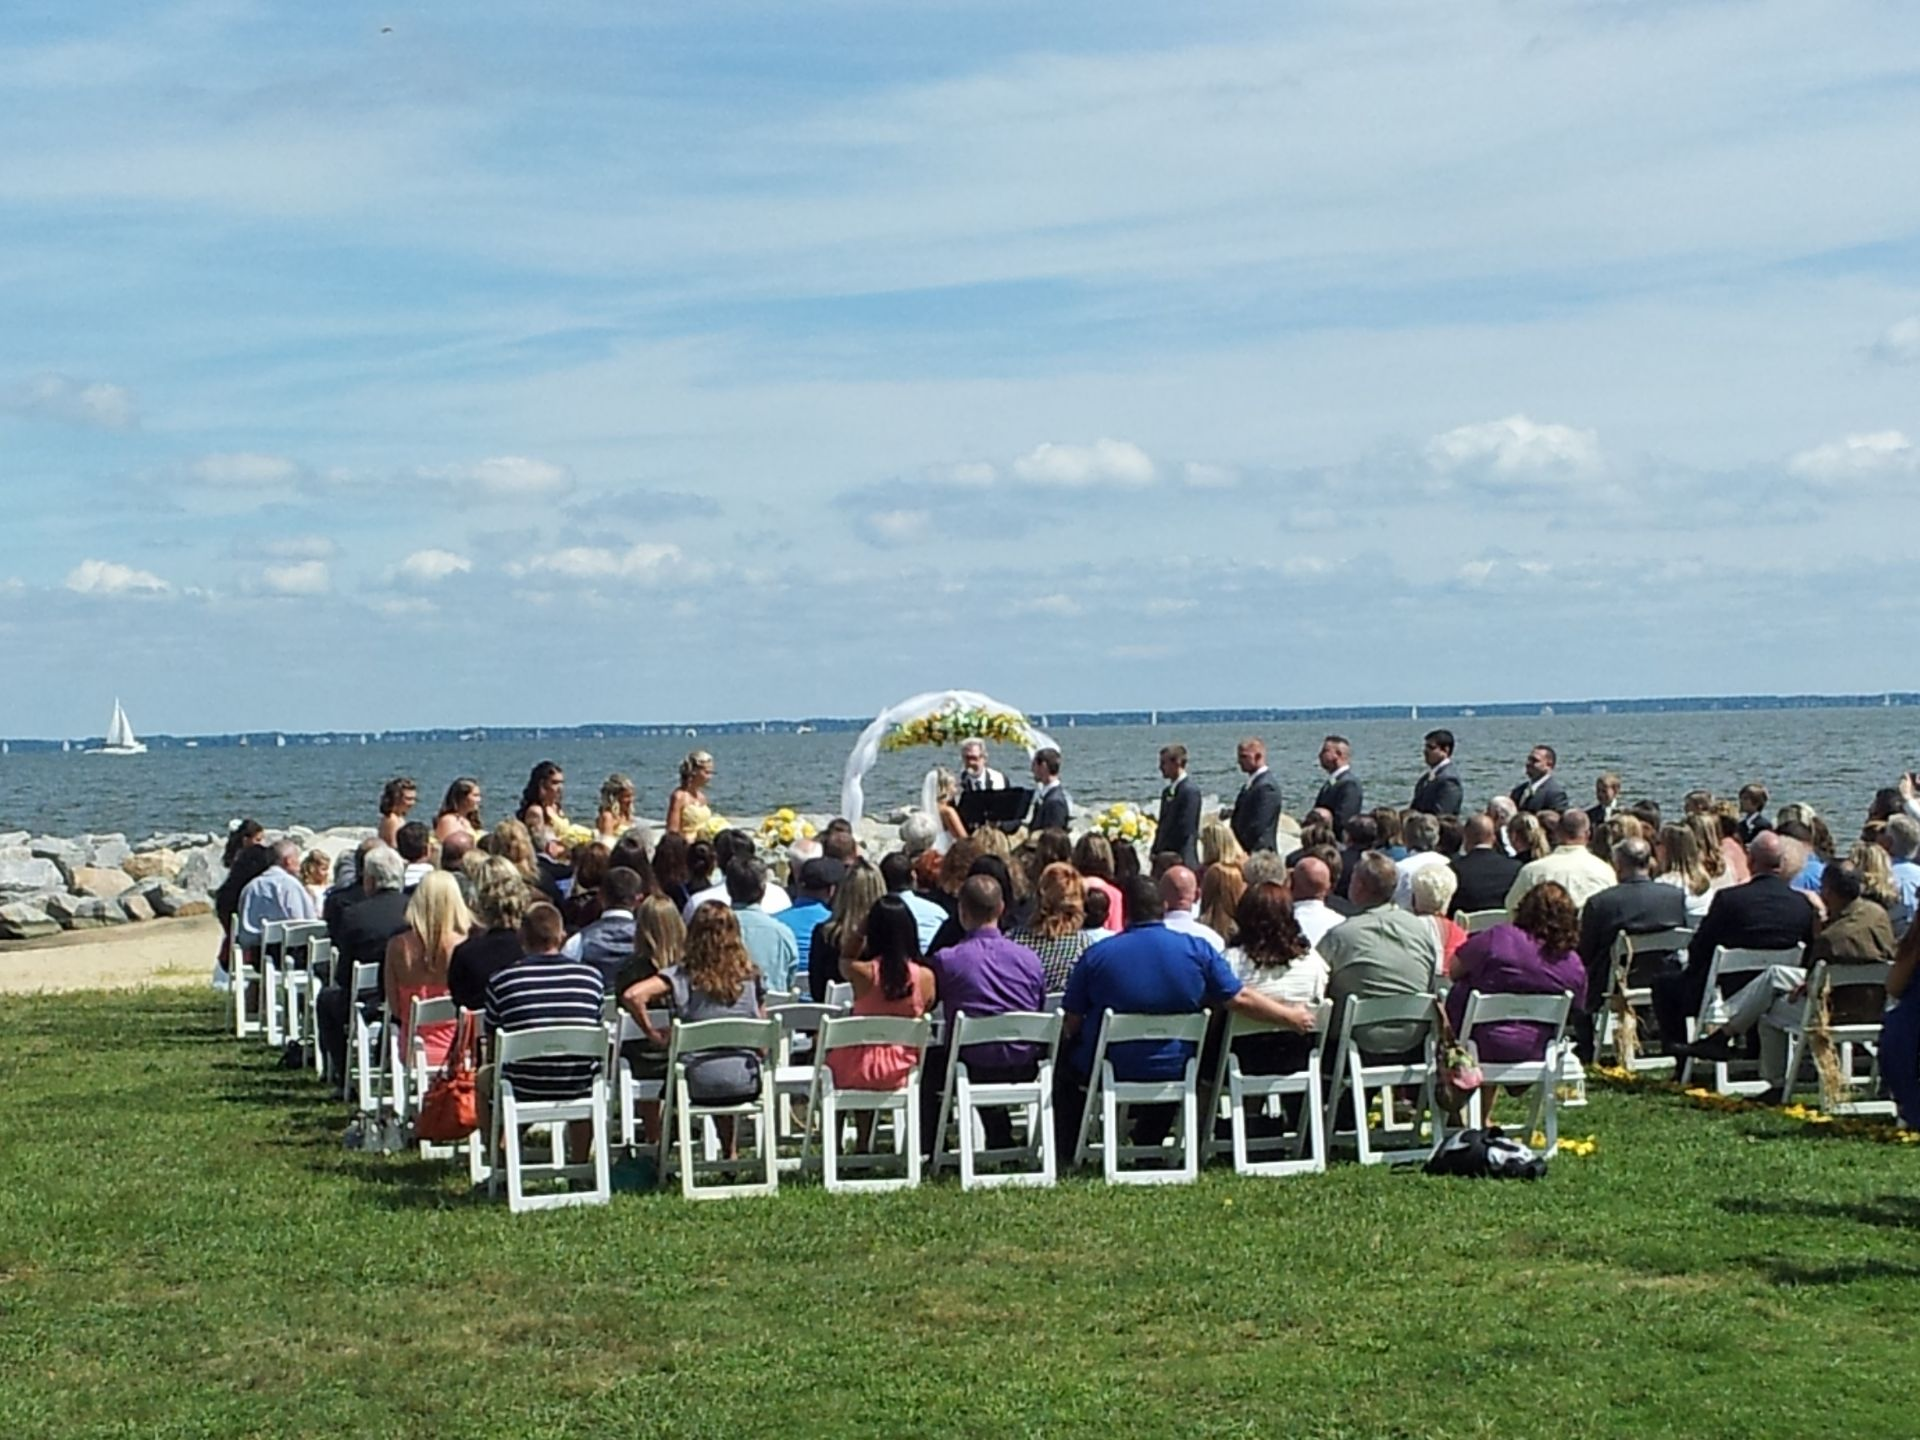 Wedding ceremony with a large group of people taking place outdoors on the grass by the water